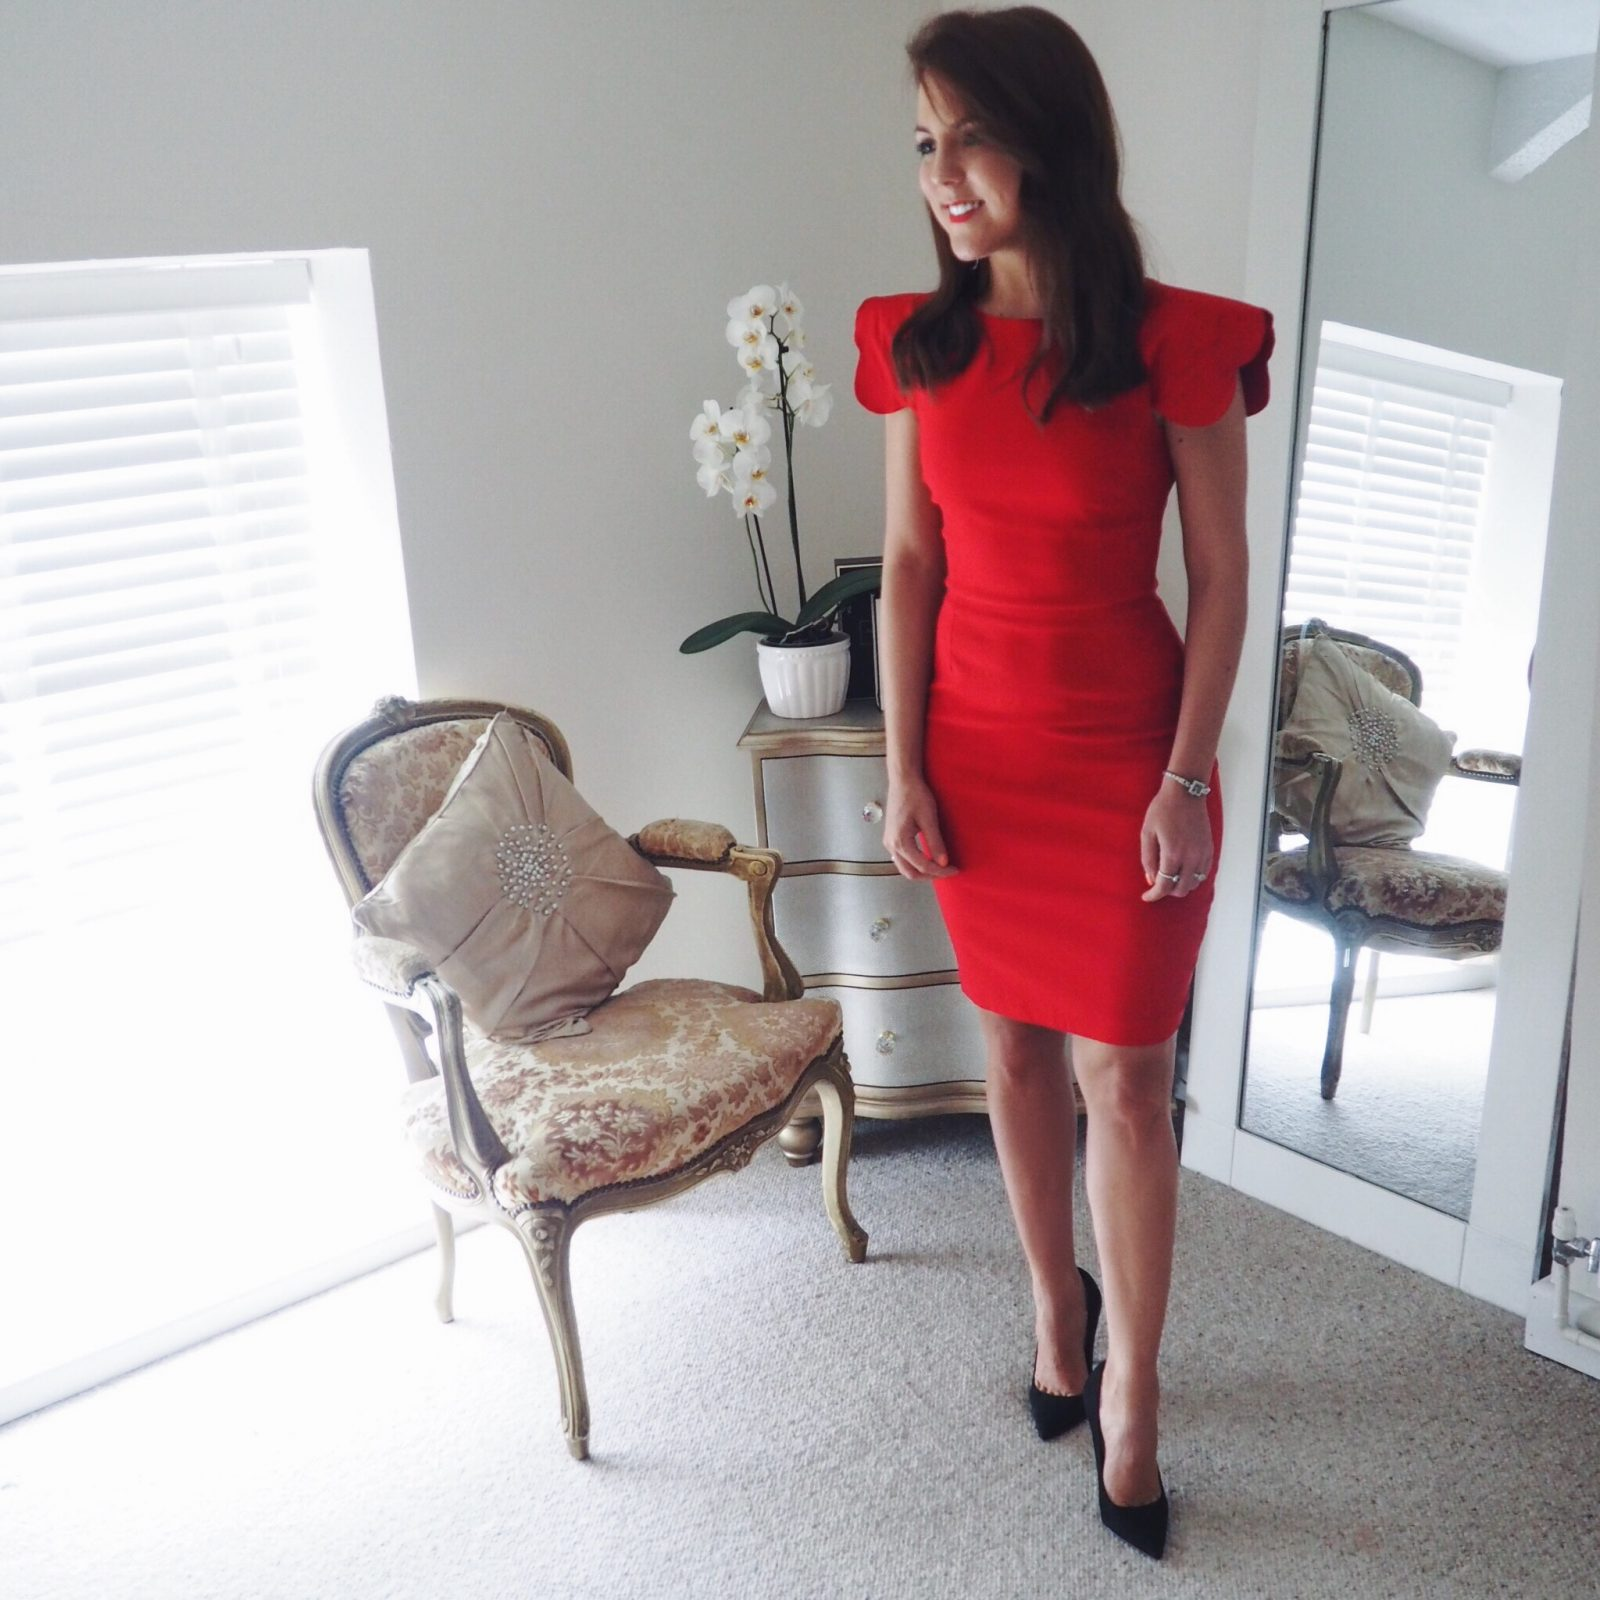 Things to look forward to in September featuring the Vesper247 red Poppy dress